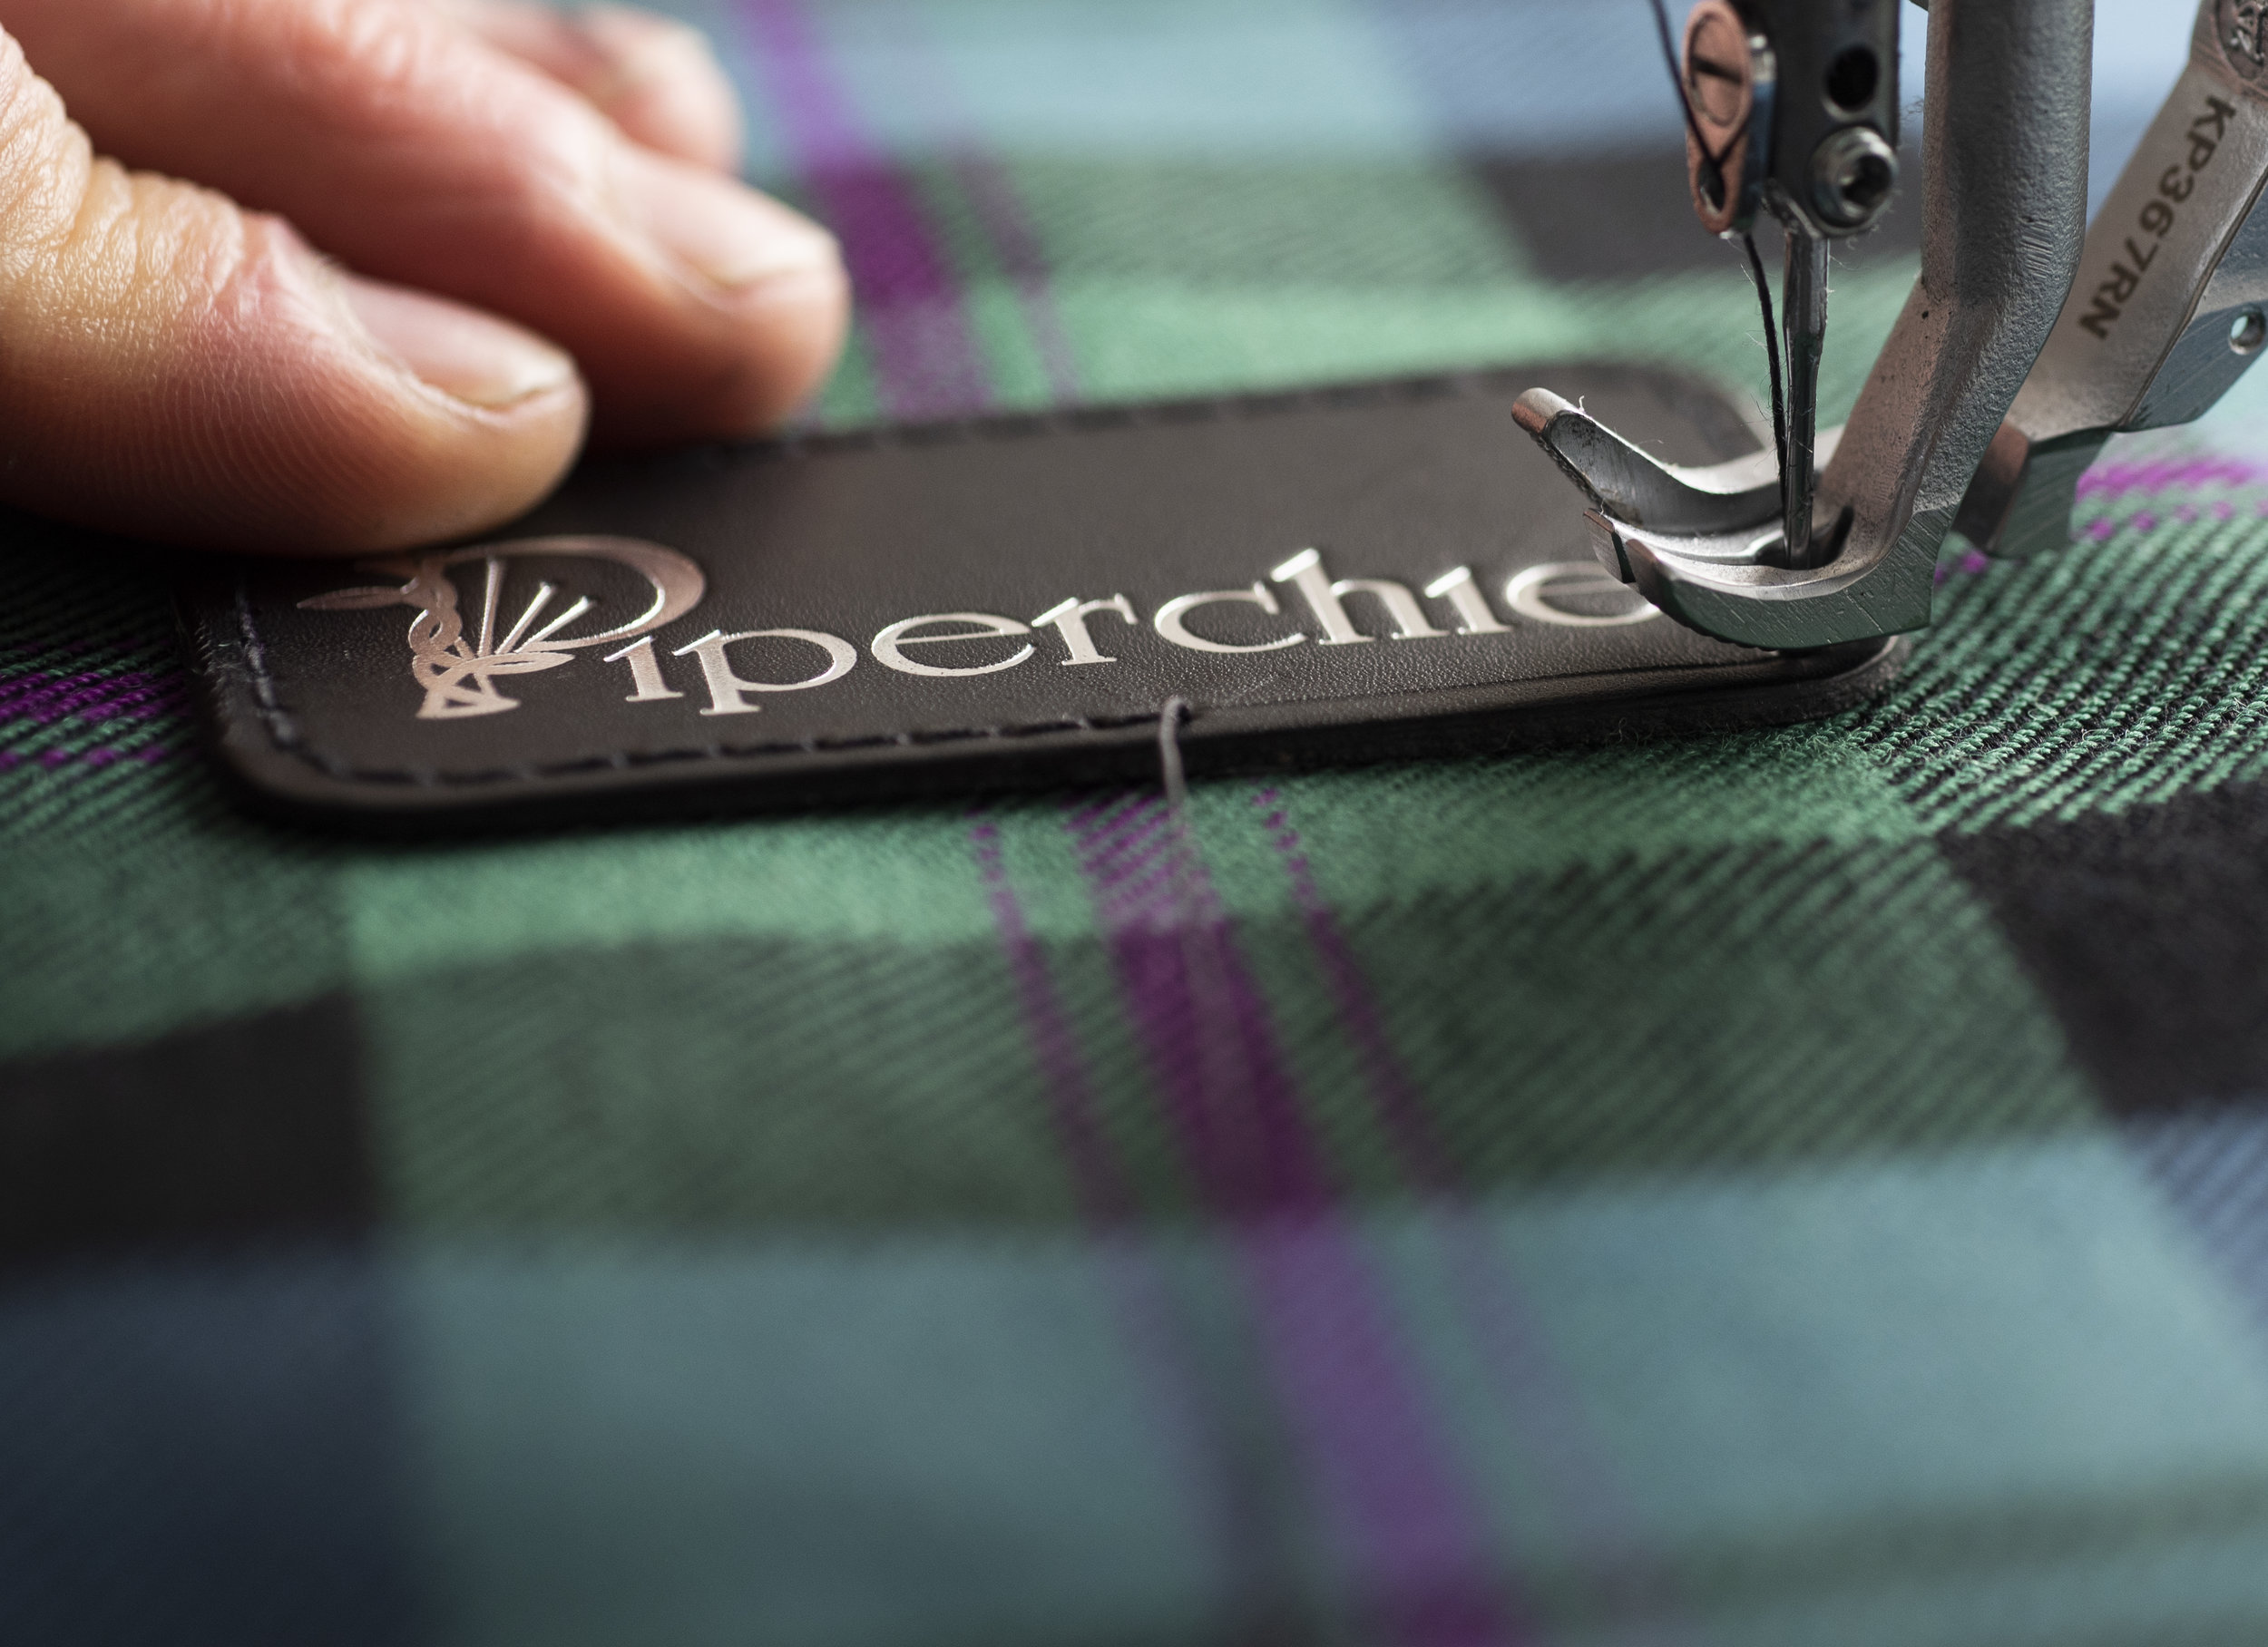 Handmade To Order - Making Quality Products